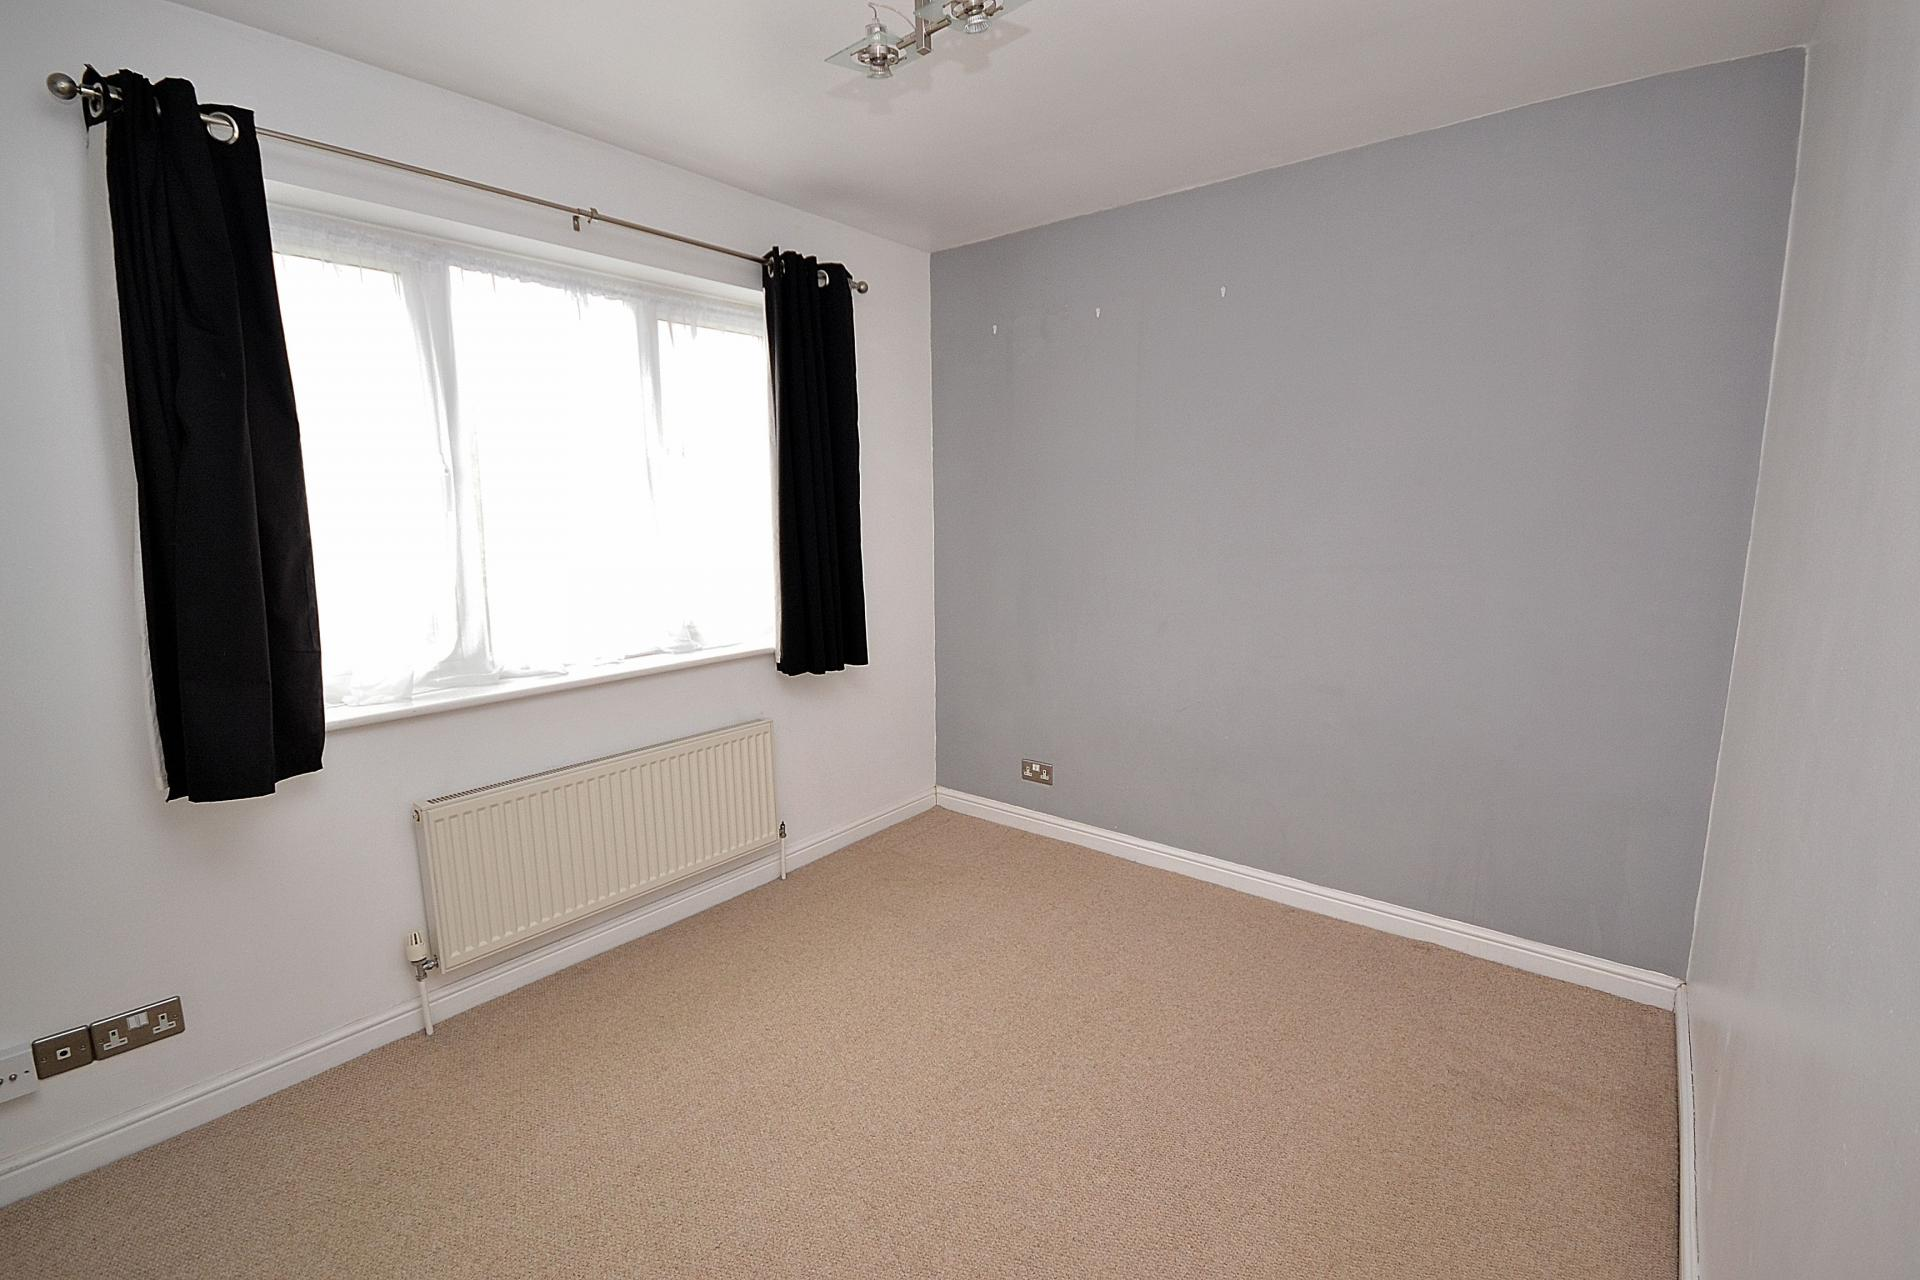 2 bedroom house for rent in leighton buzzard for How much is a bathroom worth on an appraisal